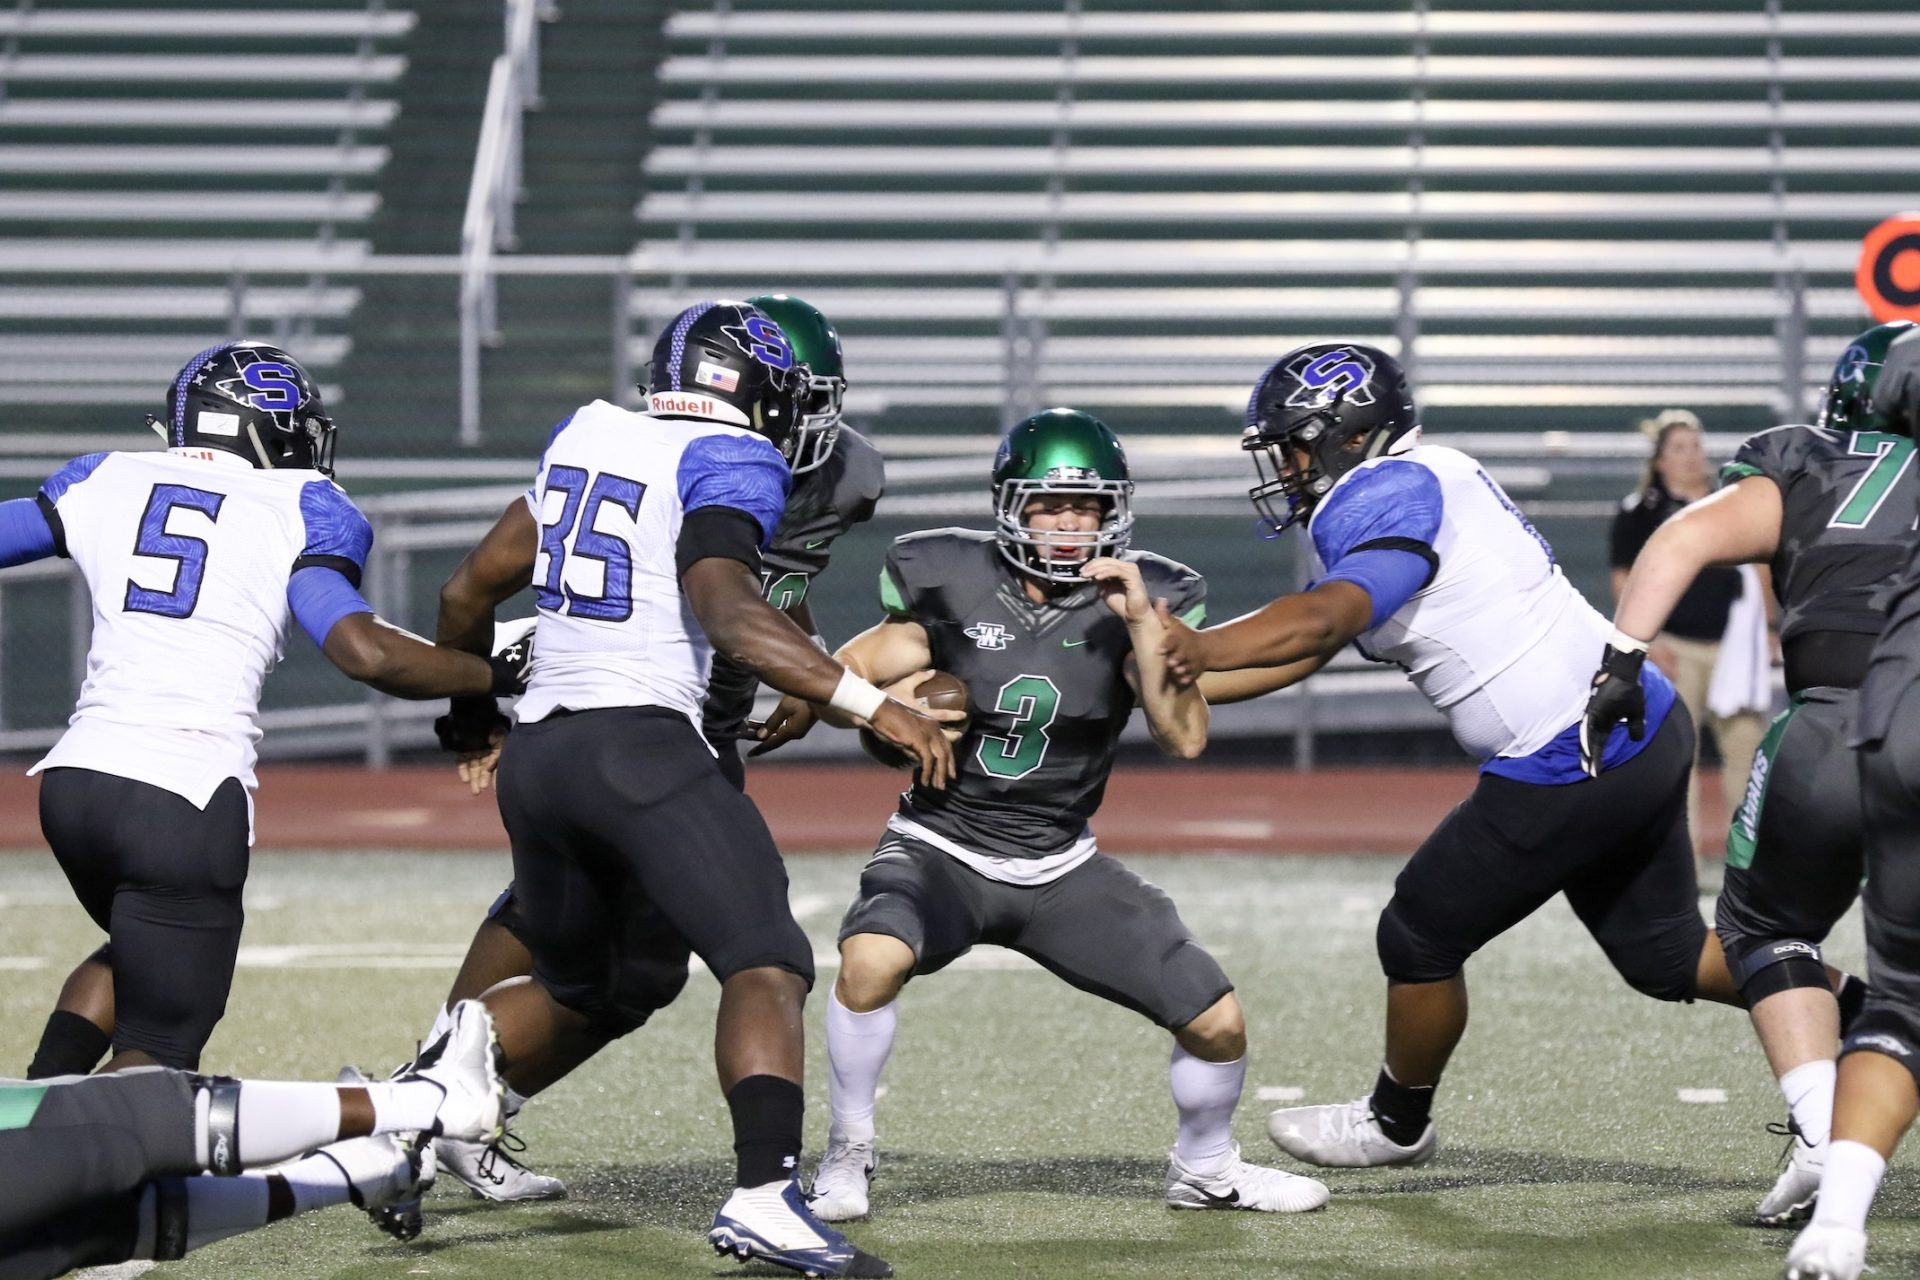 Mansfield Summit smothers offense in second half, rallies to upend Waxahachie at home in district opener